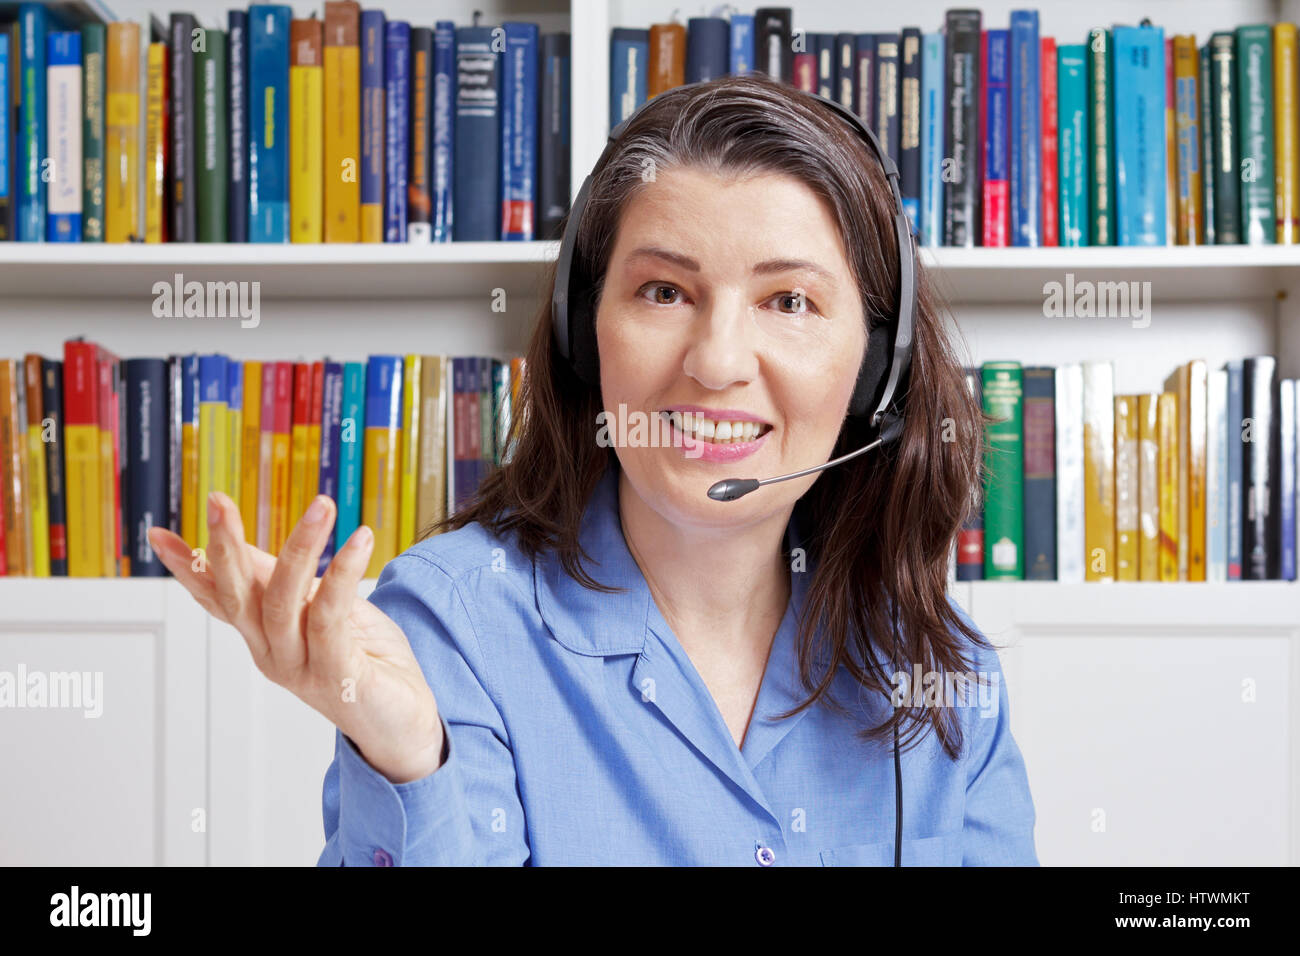 Friendly middle aged woman with headset and a blue shirt in a library, explaining something via the internet, telesales Stock Photo